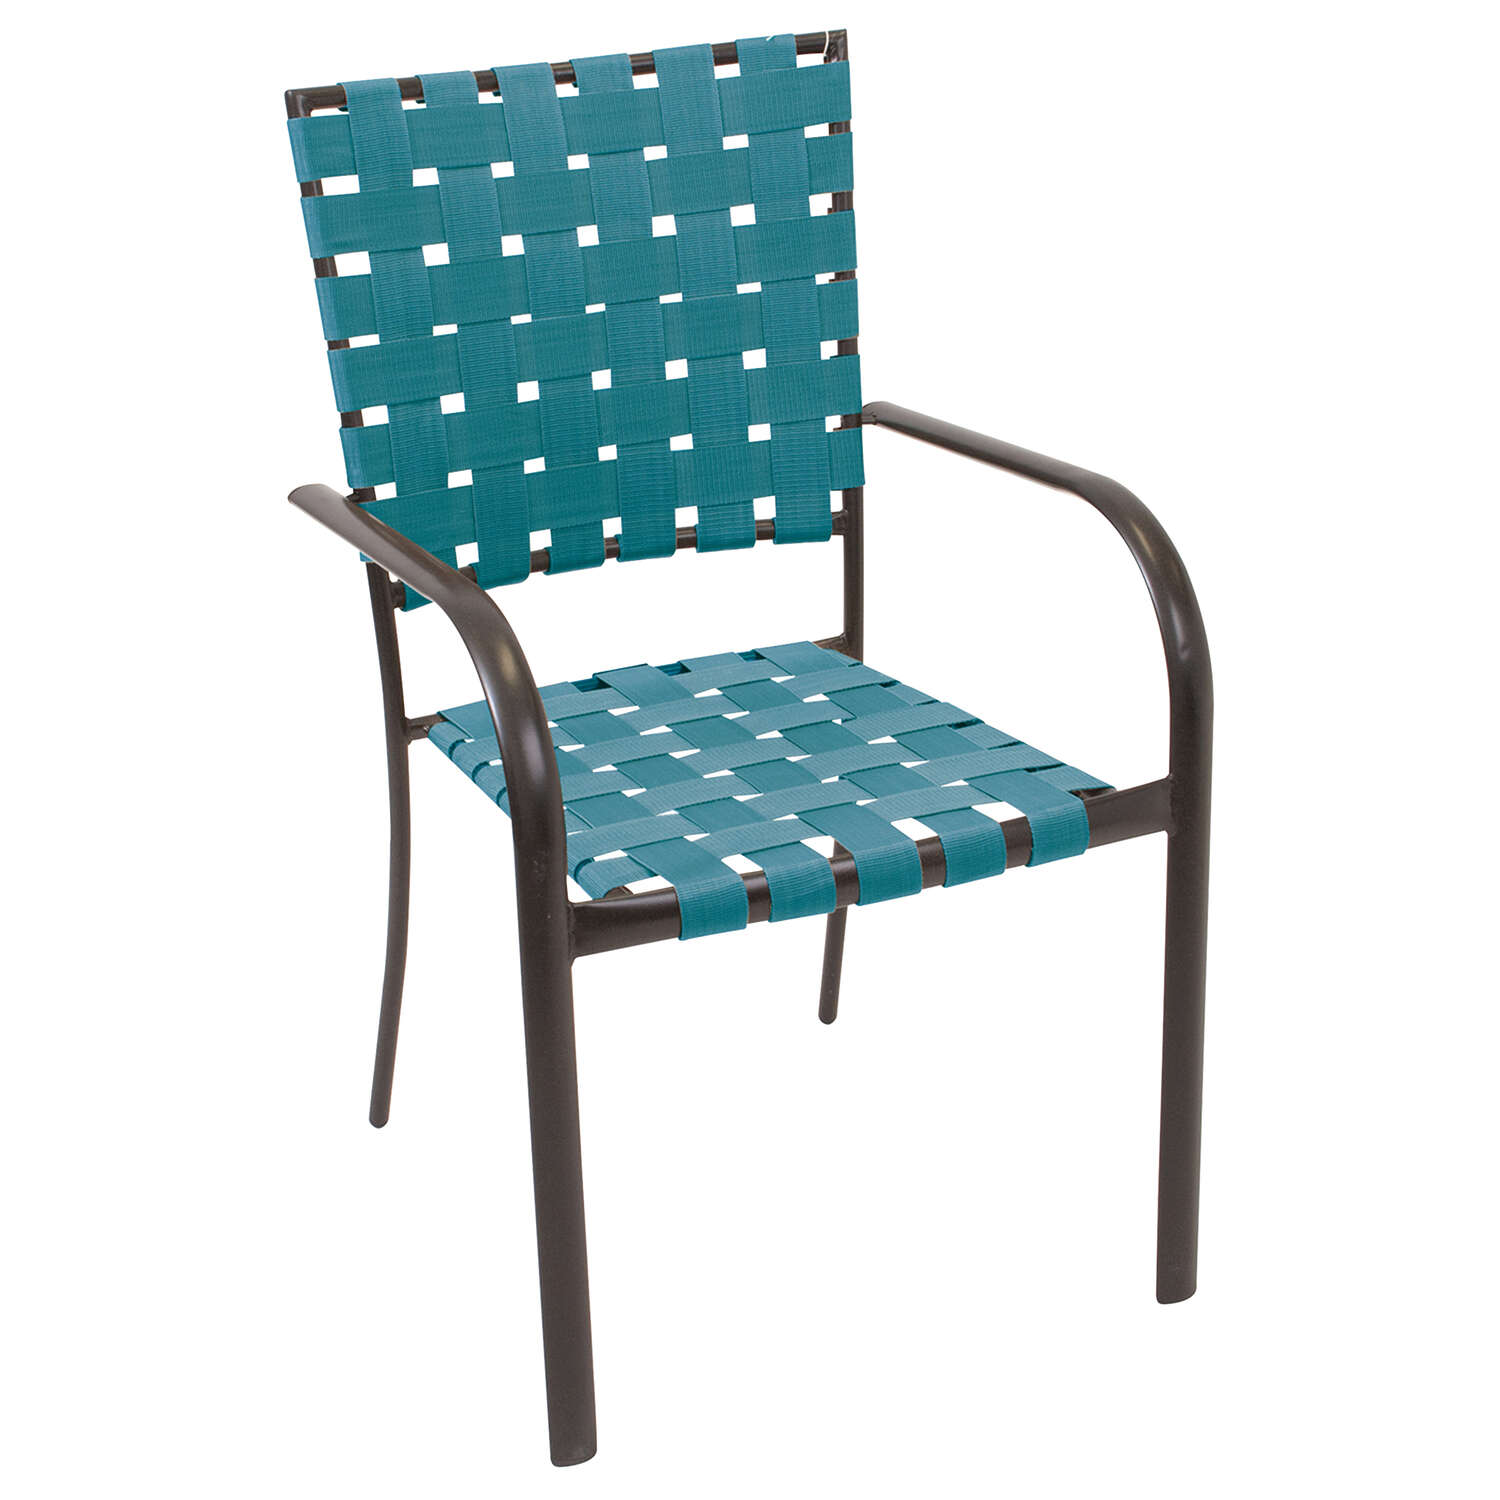 Rio Brands  Hadley  Black  Steel Frame Stackable  Bistro Chair  Teal